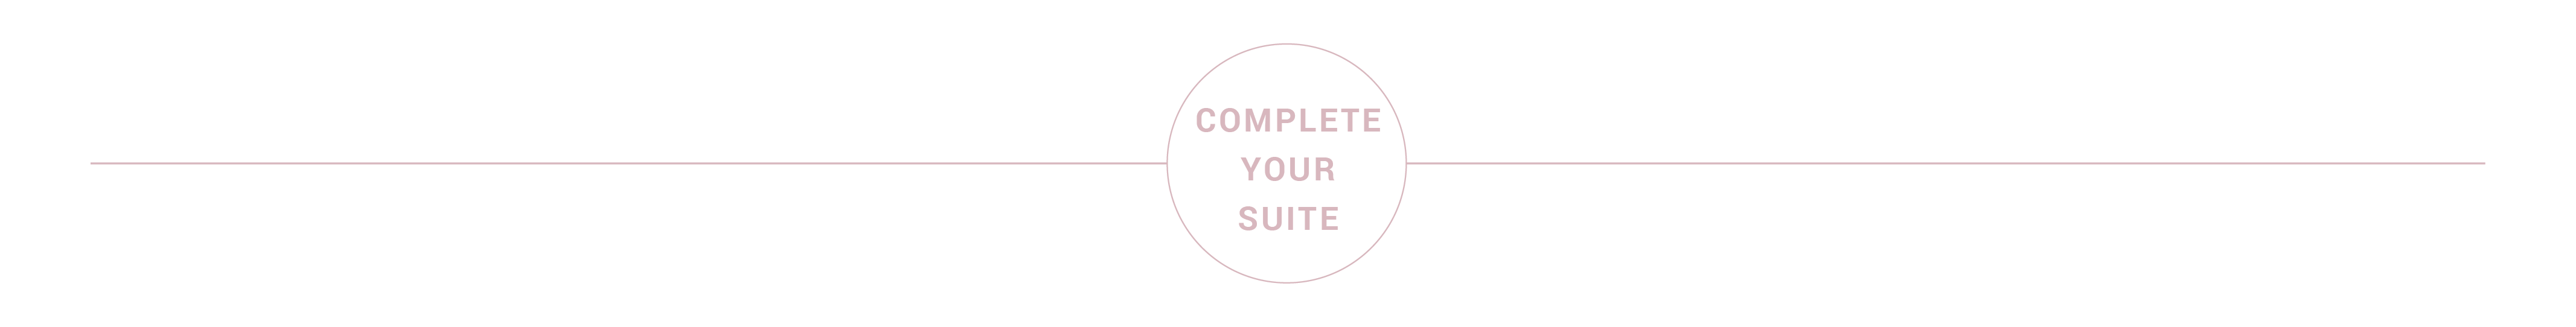 Complete Your Suite